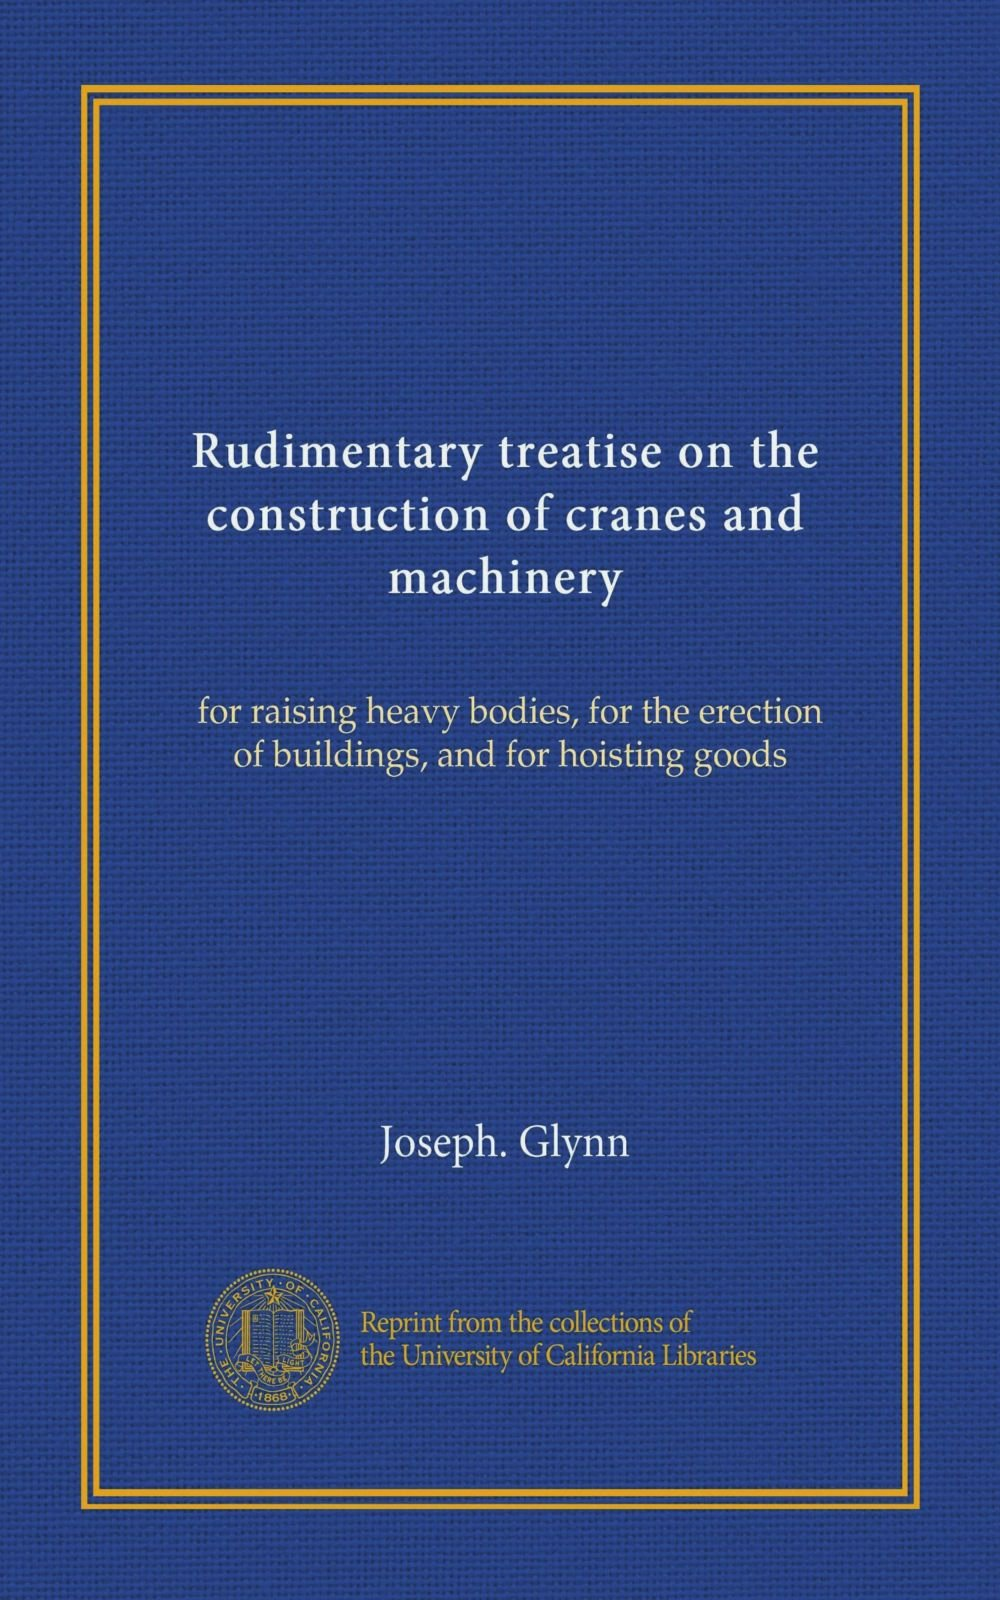 Rudimentary treatise on the construction of cranes and machinery: for raising heavy bodies, for the erection of buildings, and for hoisting goods pdf epub